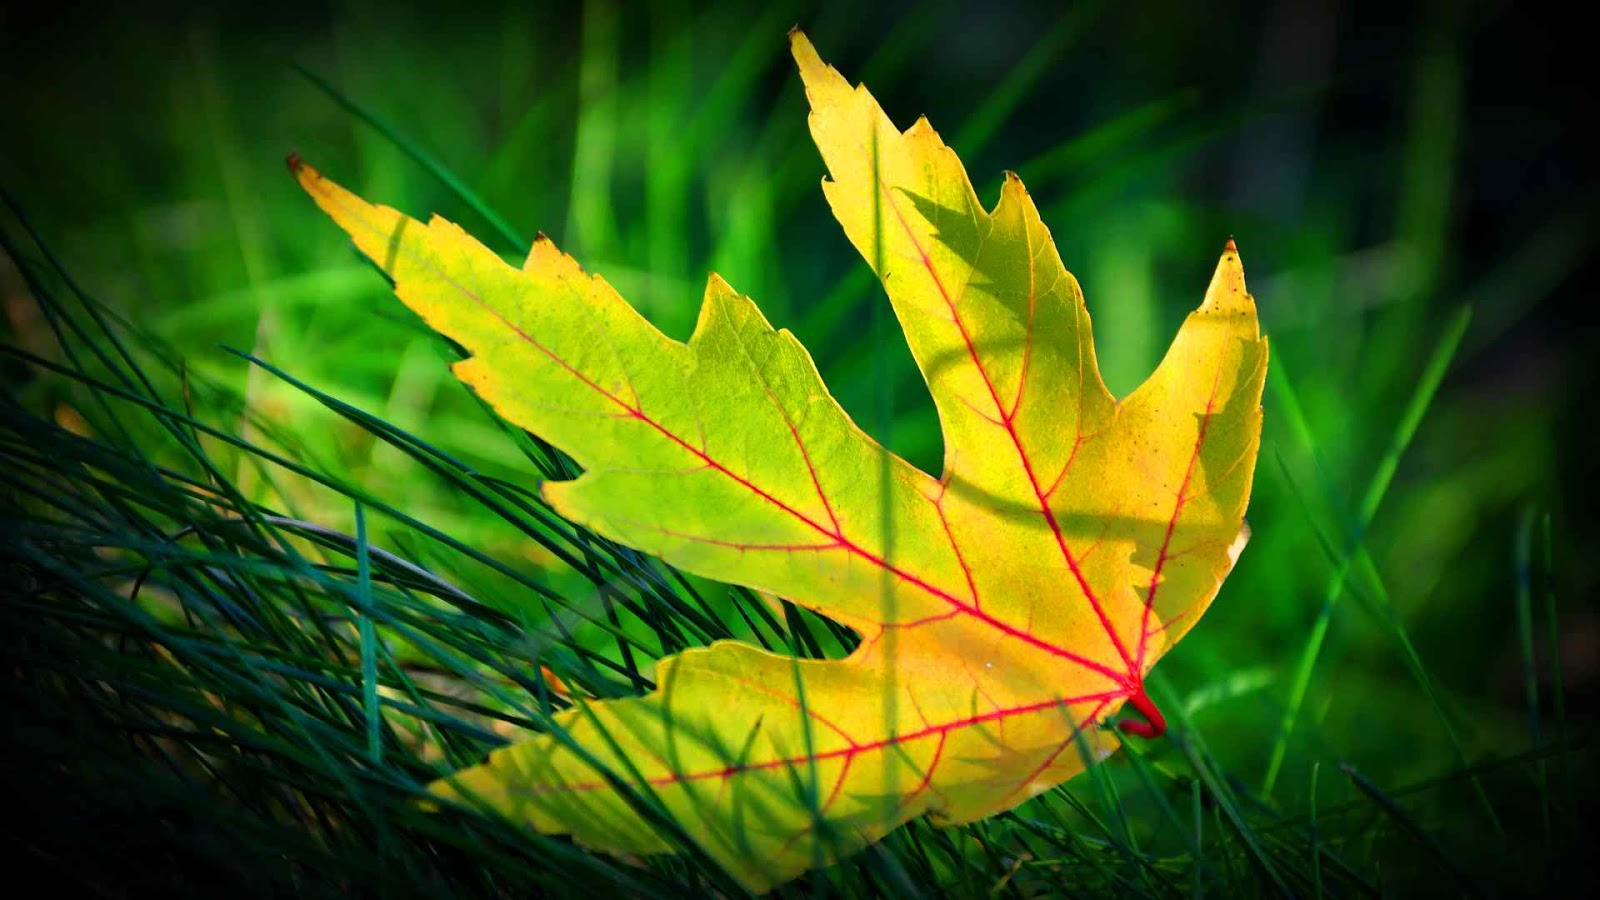 Hd wallpaper mobile screen - Most Beautiful Green Leaf Spring Hd Wallpaper For Iphone Desktop Tab And All Smartphone Androidvally